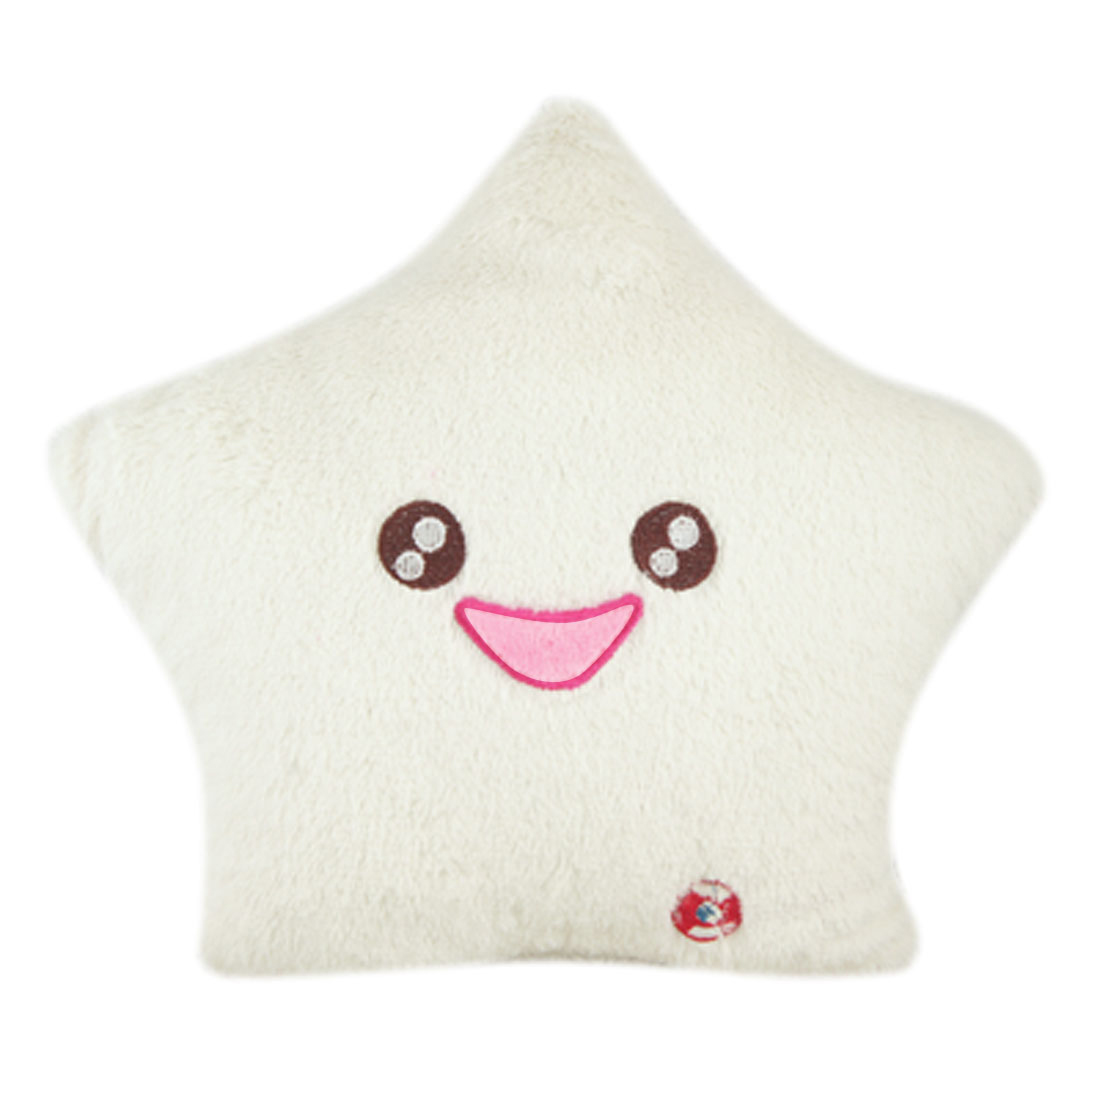 Smile Star Design Color Changing LED Light Toss Thrown Pillow White